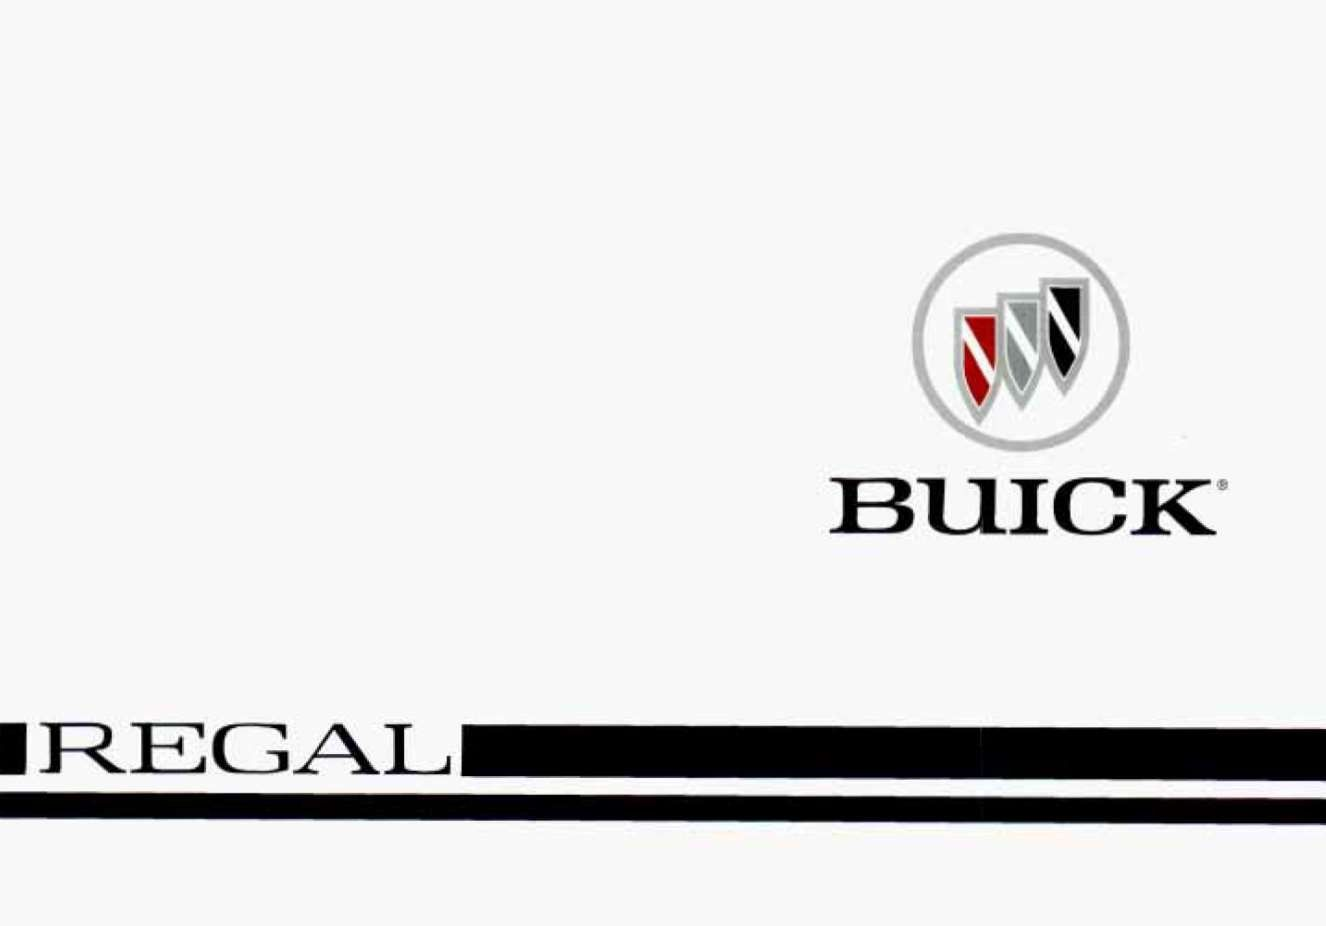 Buick Regal 1996 Owner's Manual has been published on